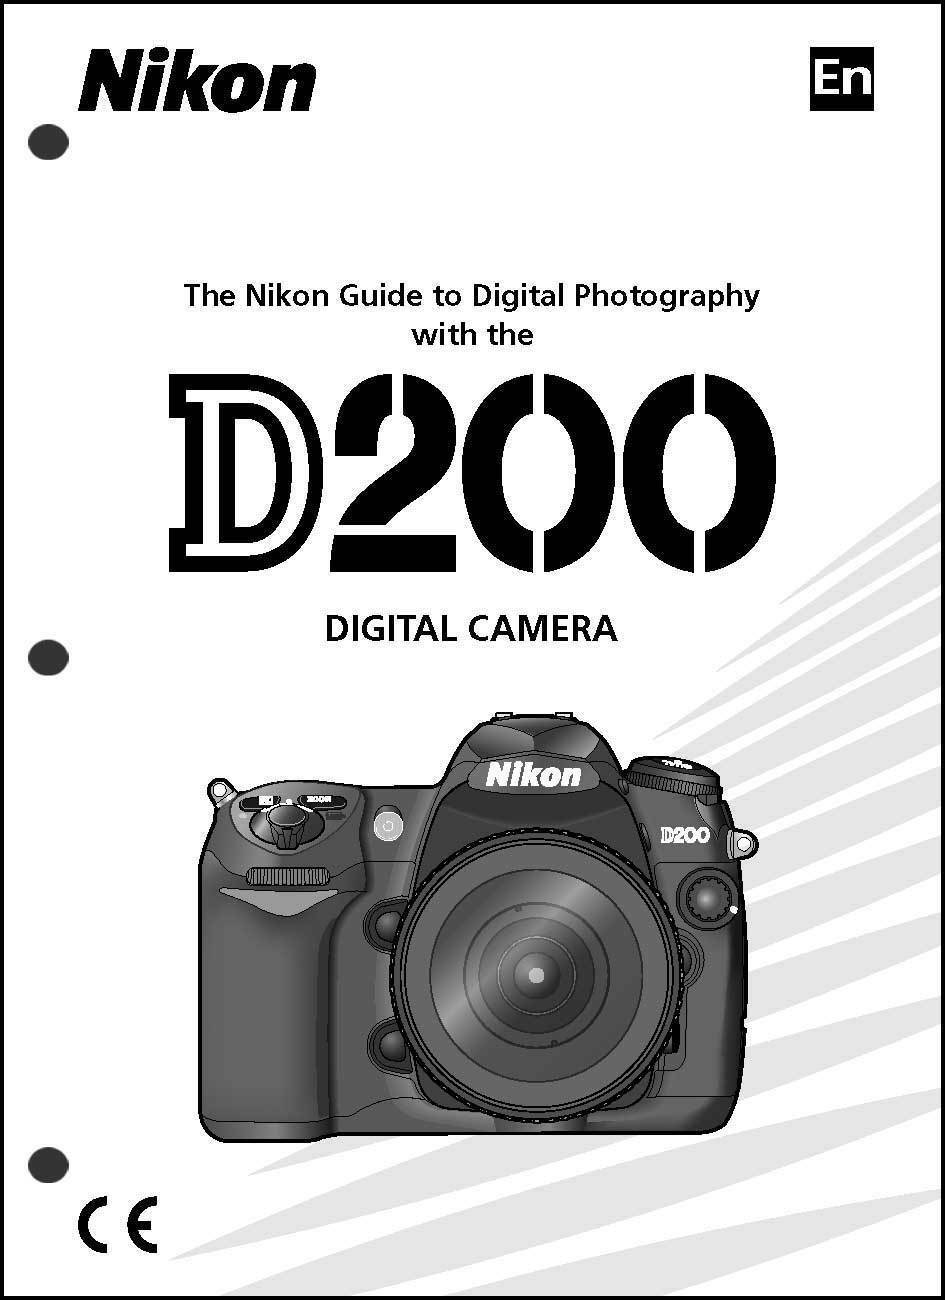 nikon d200 user manual guide instruction operator manual 11 95 rh picclick com nikon d3000 instruction manual download nikon d3000 instruction manual download